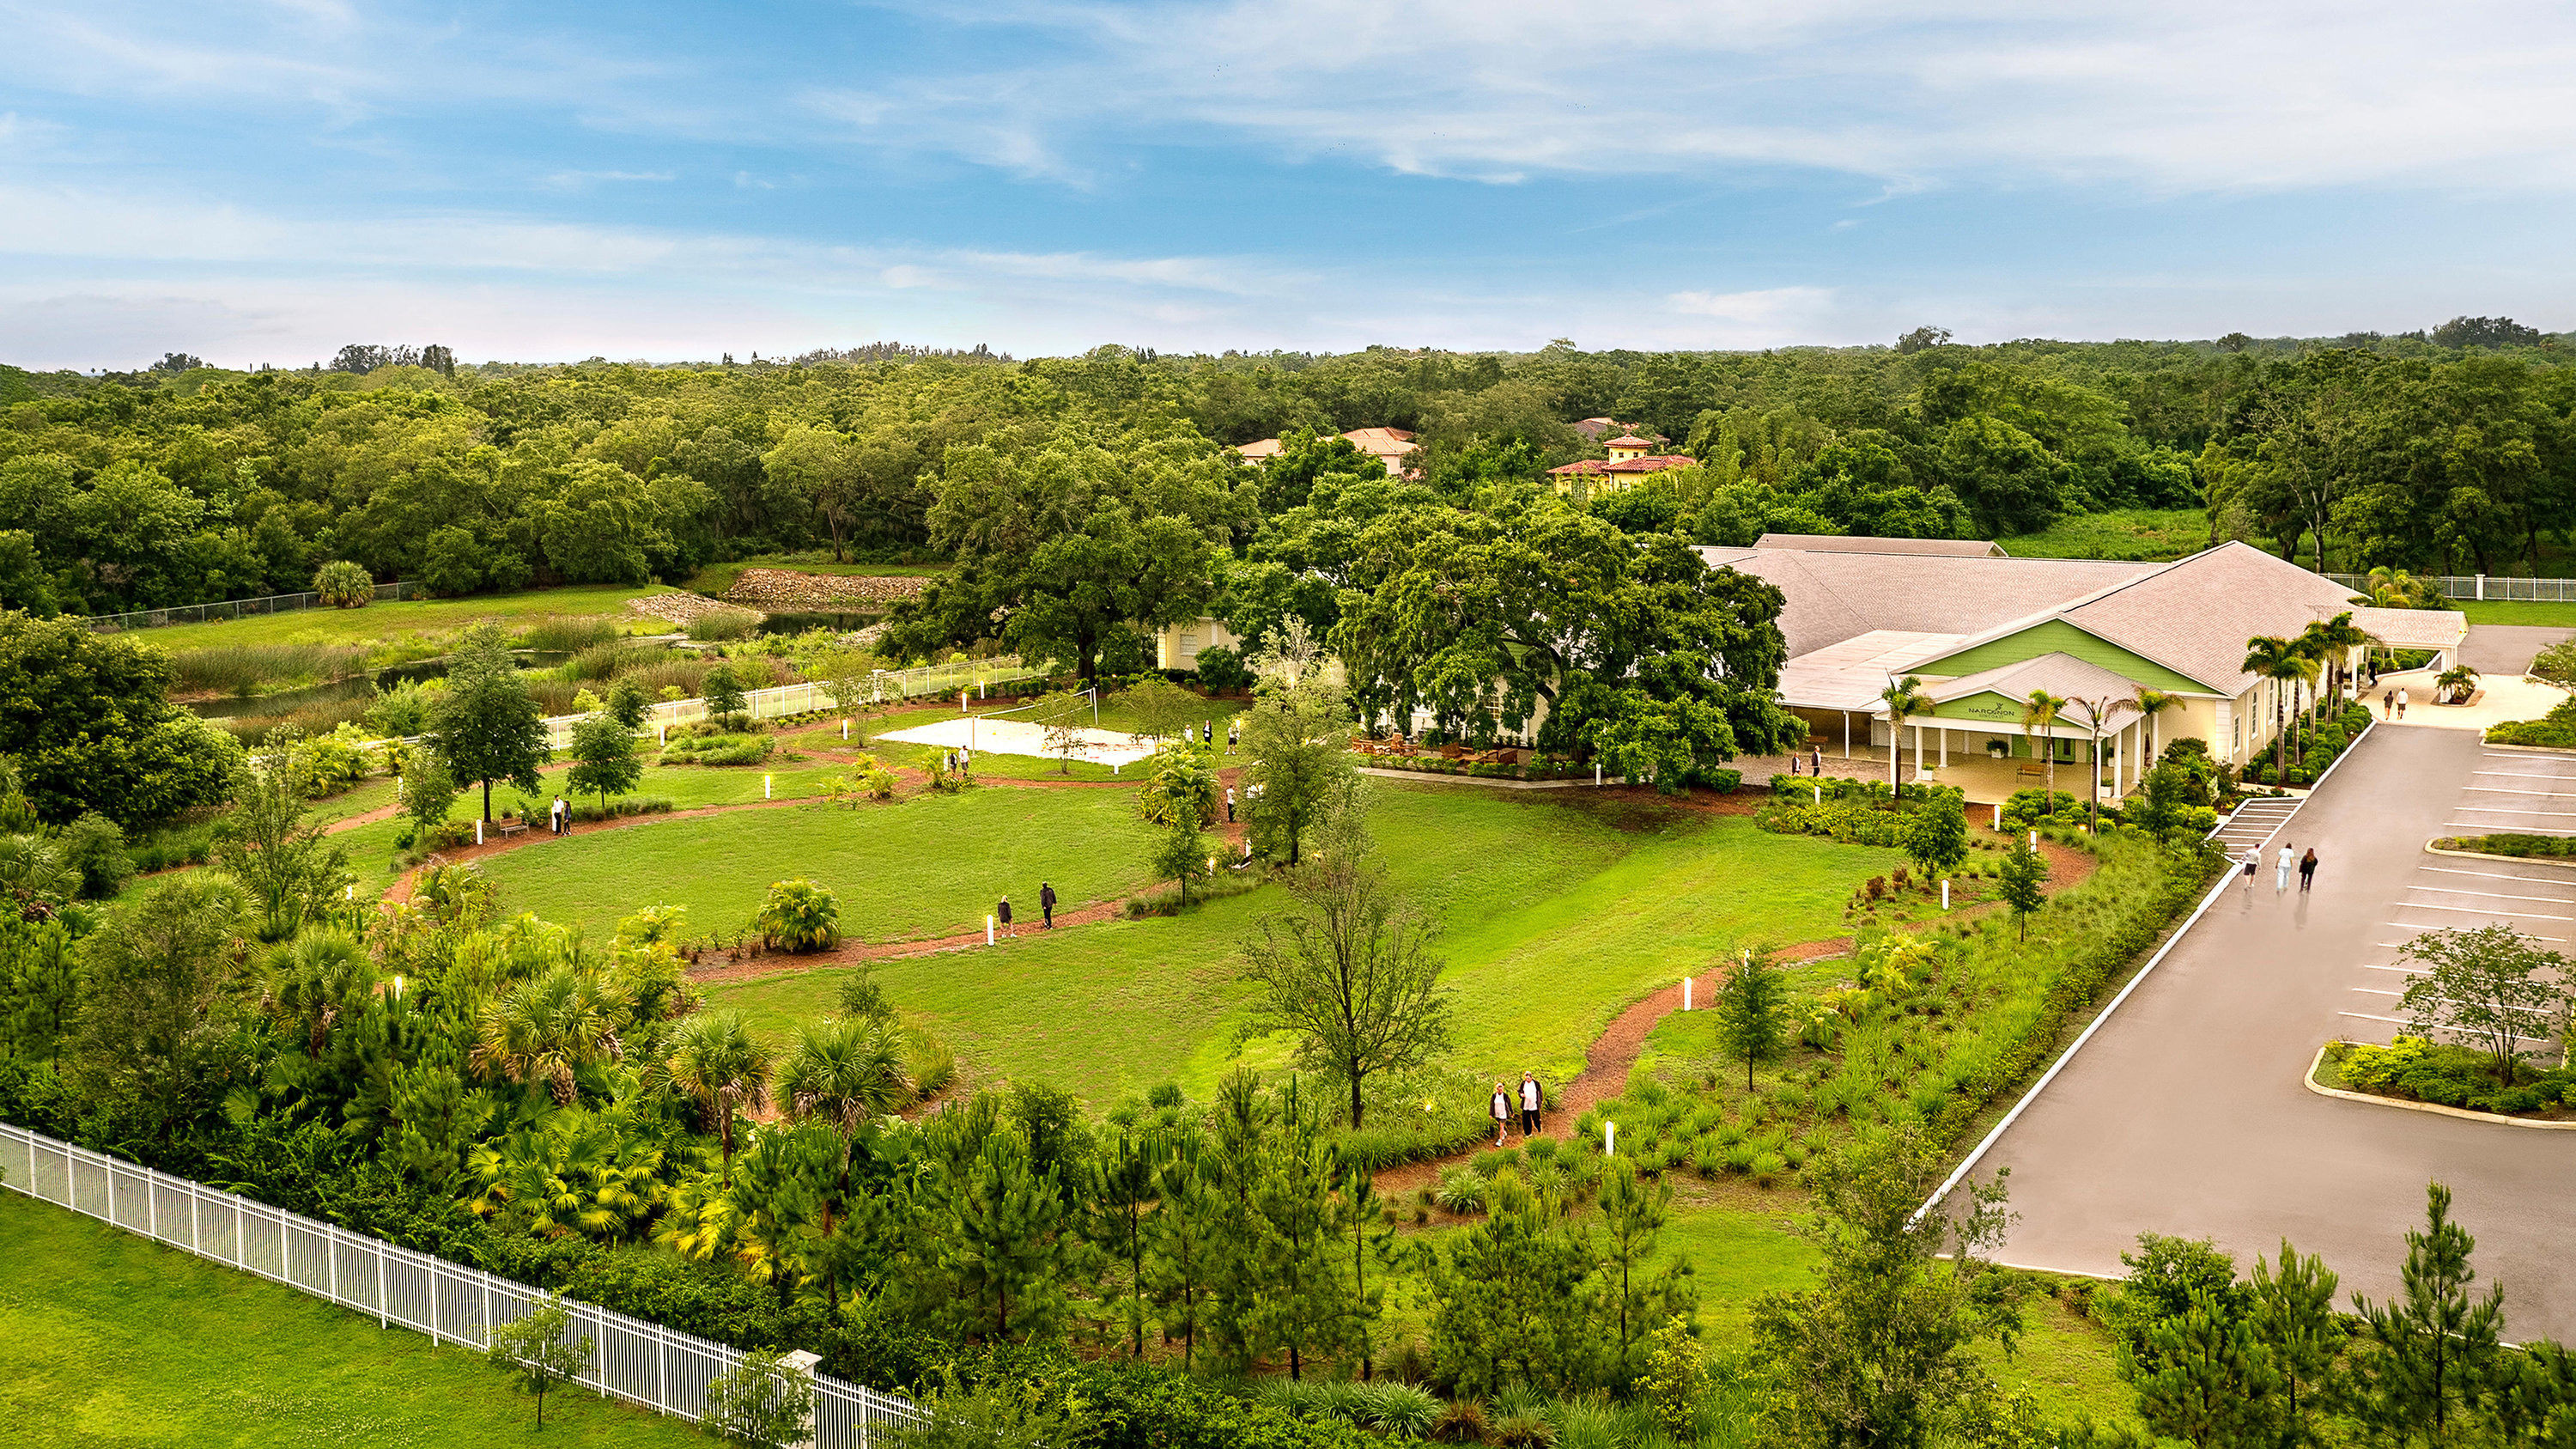 Green Grounds